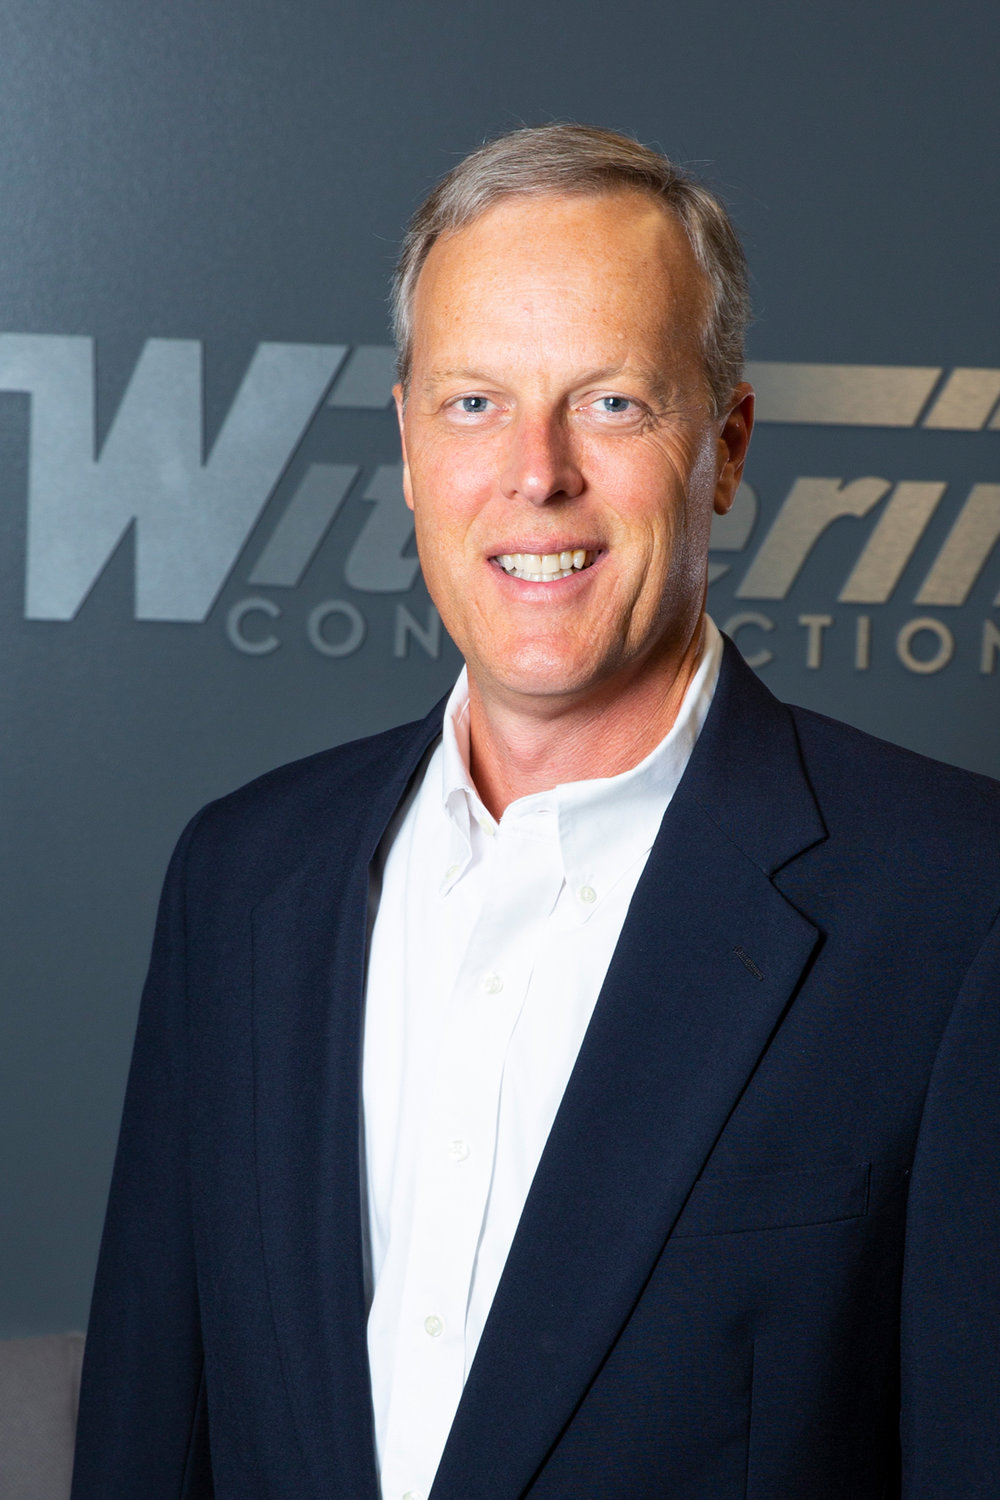 JOHN E. WITHERINGTON, JR.PRESIDENT - John E. Witherington, Jr. received his master's degree in building construction from Auburn University in 1994. Prior to receiving his master's degree, John graduated from Washington and Lee University in Lexington, Virginia with a Bachelor of Arts in 1992. With over 24 years of experience in commercial contracting and design-build, John offers an innovative, revolutionary approach to the traditional construction model. His integrity and professionalism are evident when it comes to backing clients' specific visions and goals. When he's not tackling the next project or busy on-site, John enjoys spending time with his wife and three children boating and quail hunting.